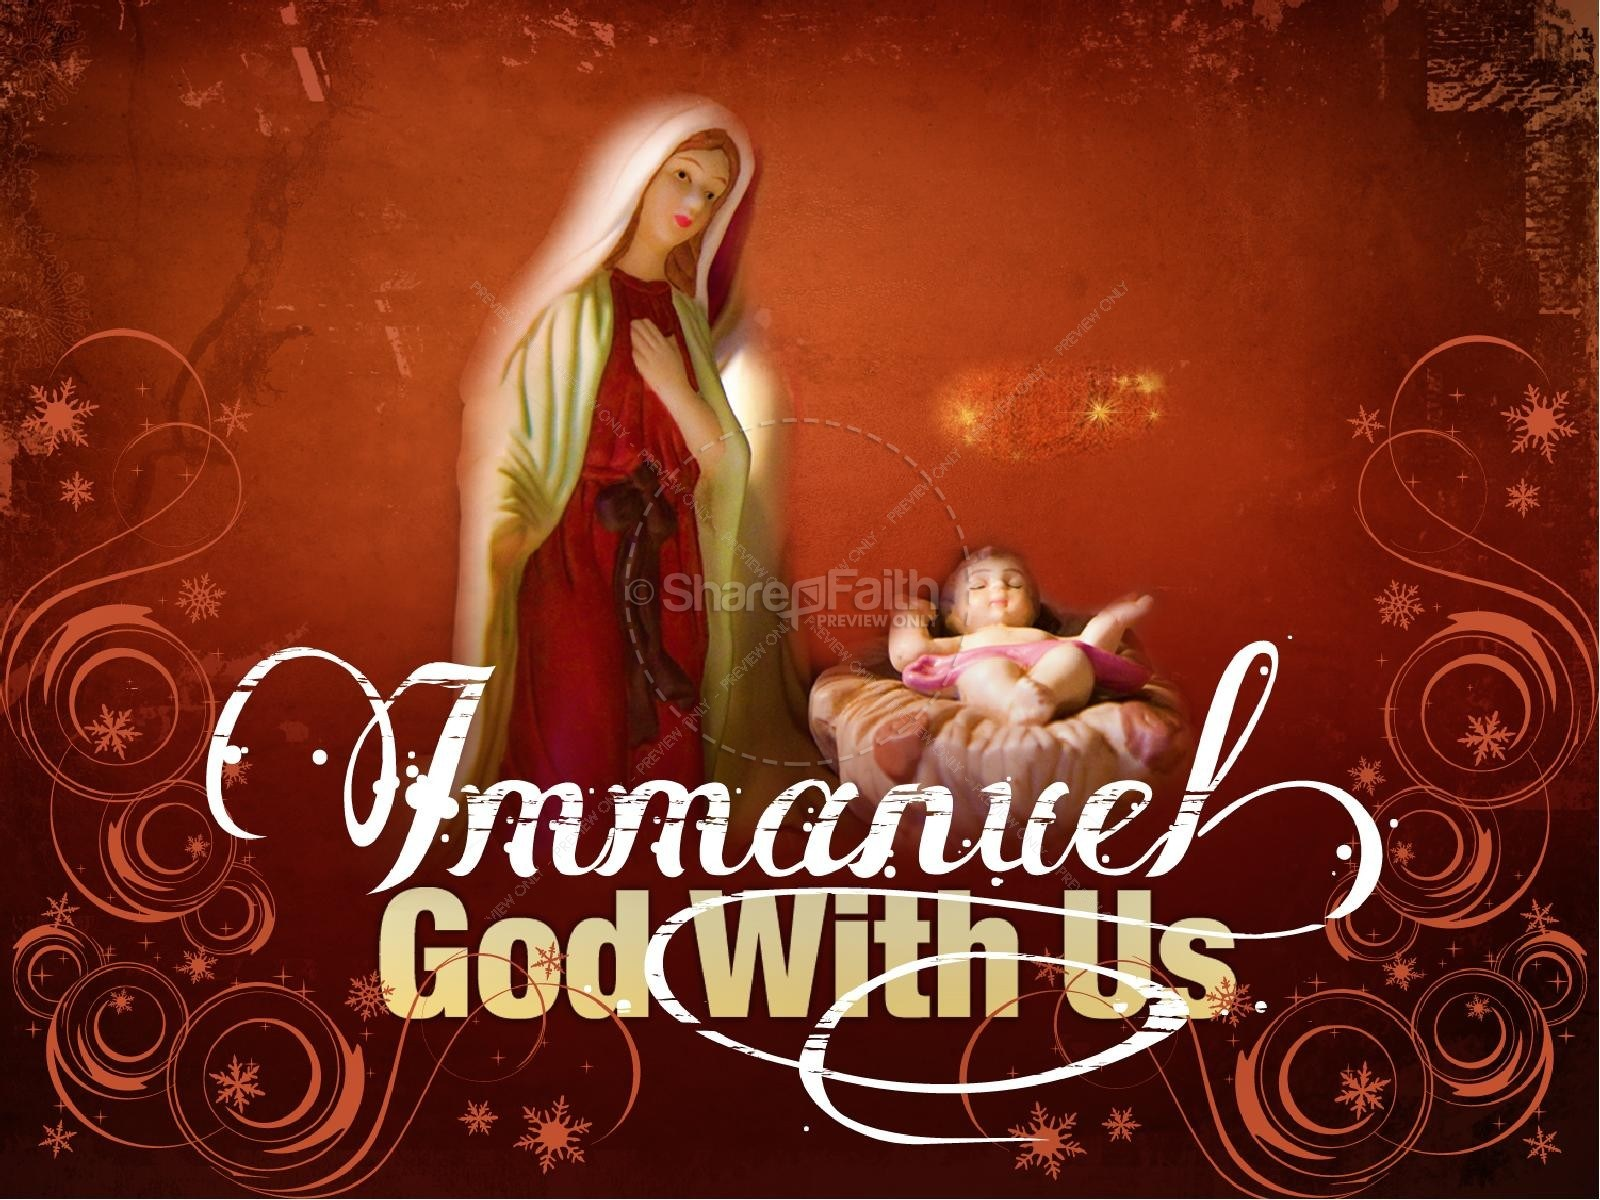 God with us clipart svg transparent stock Emmanuel god with us clipart 6 » Clipart Portal svg transparent stock